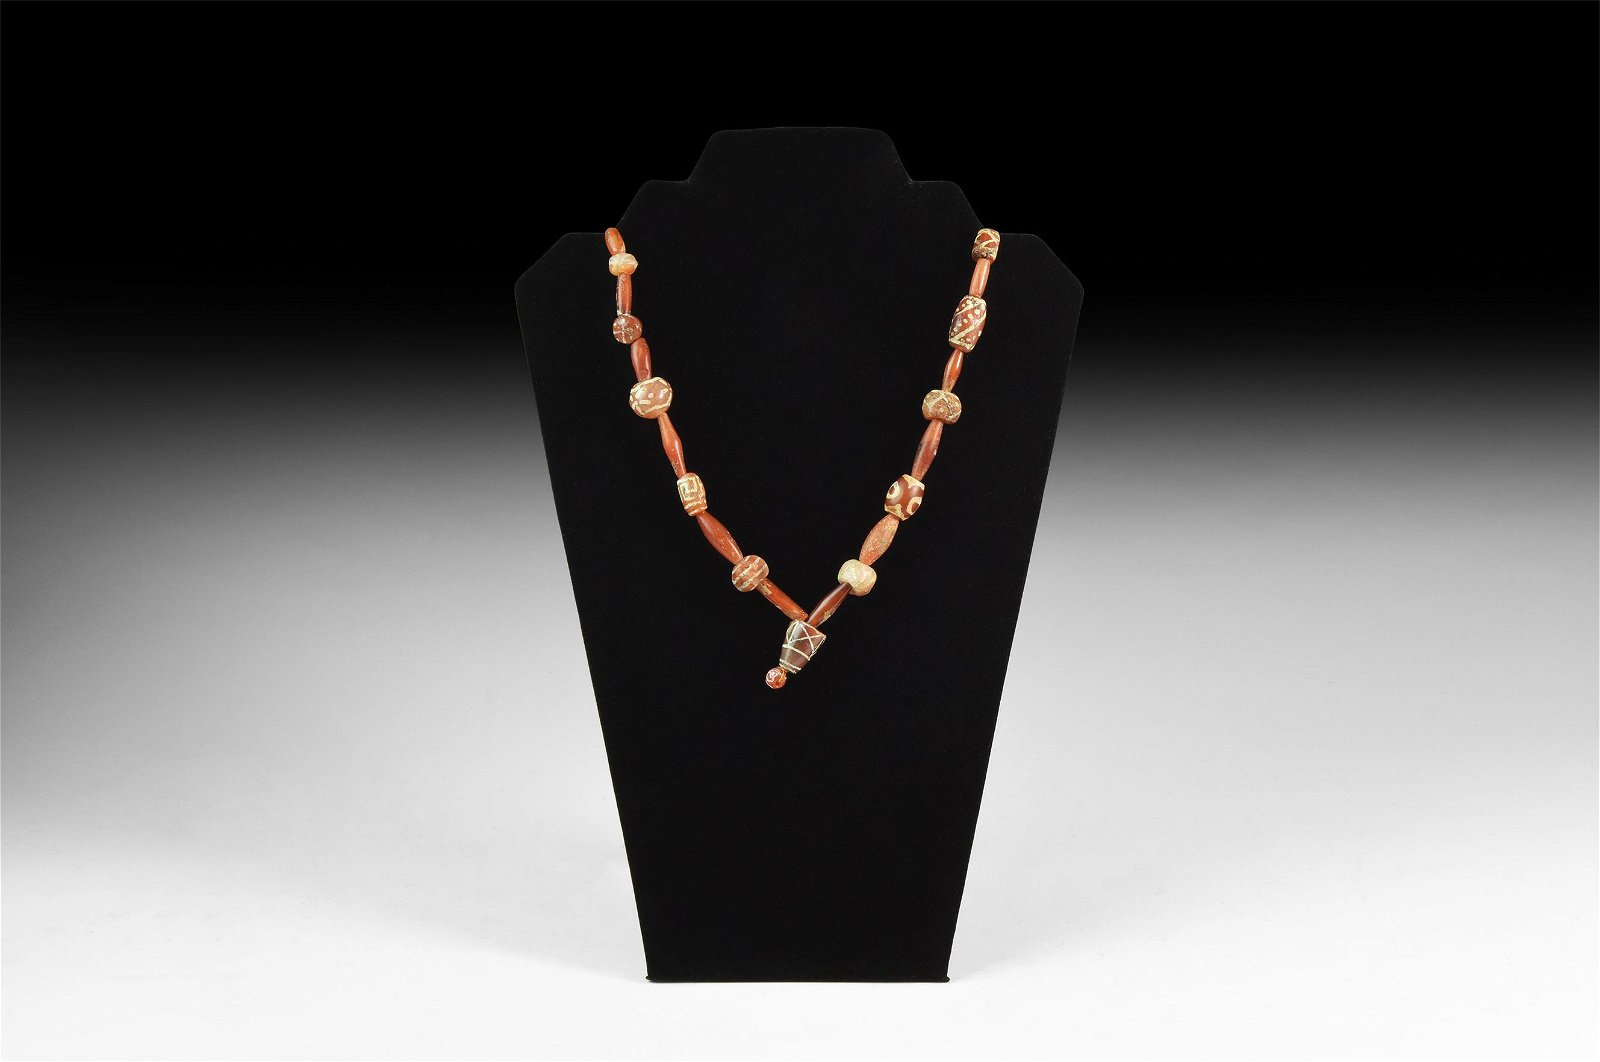 Indus Valley Etched Carnelian Bead Necklace